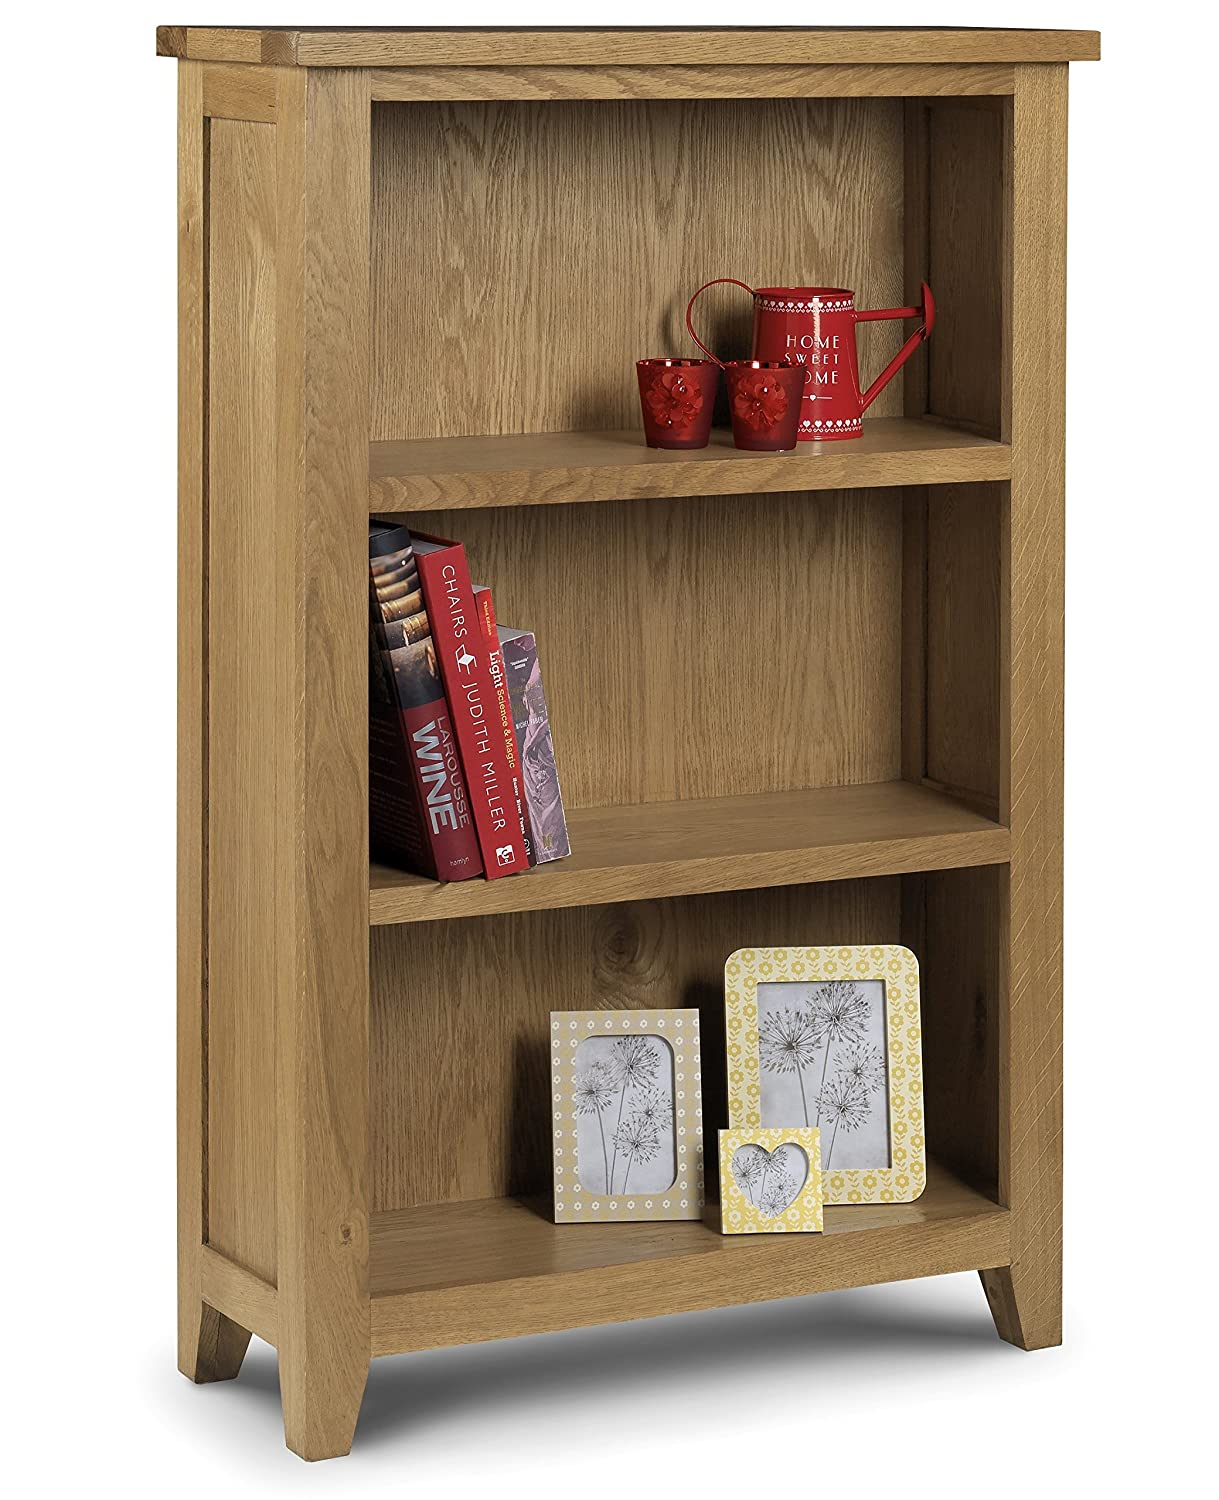 design small shelf furniture on smartness bookshelf brilliant bookcase shelves creative book